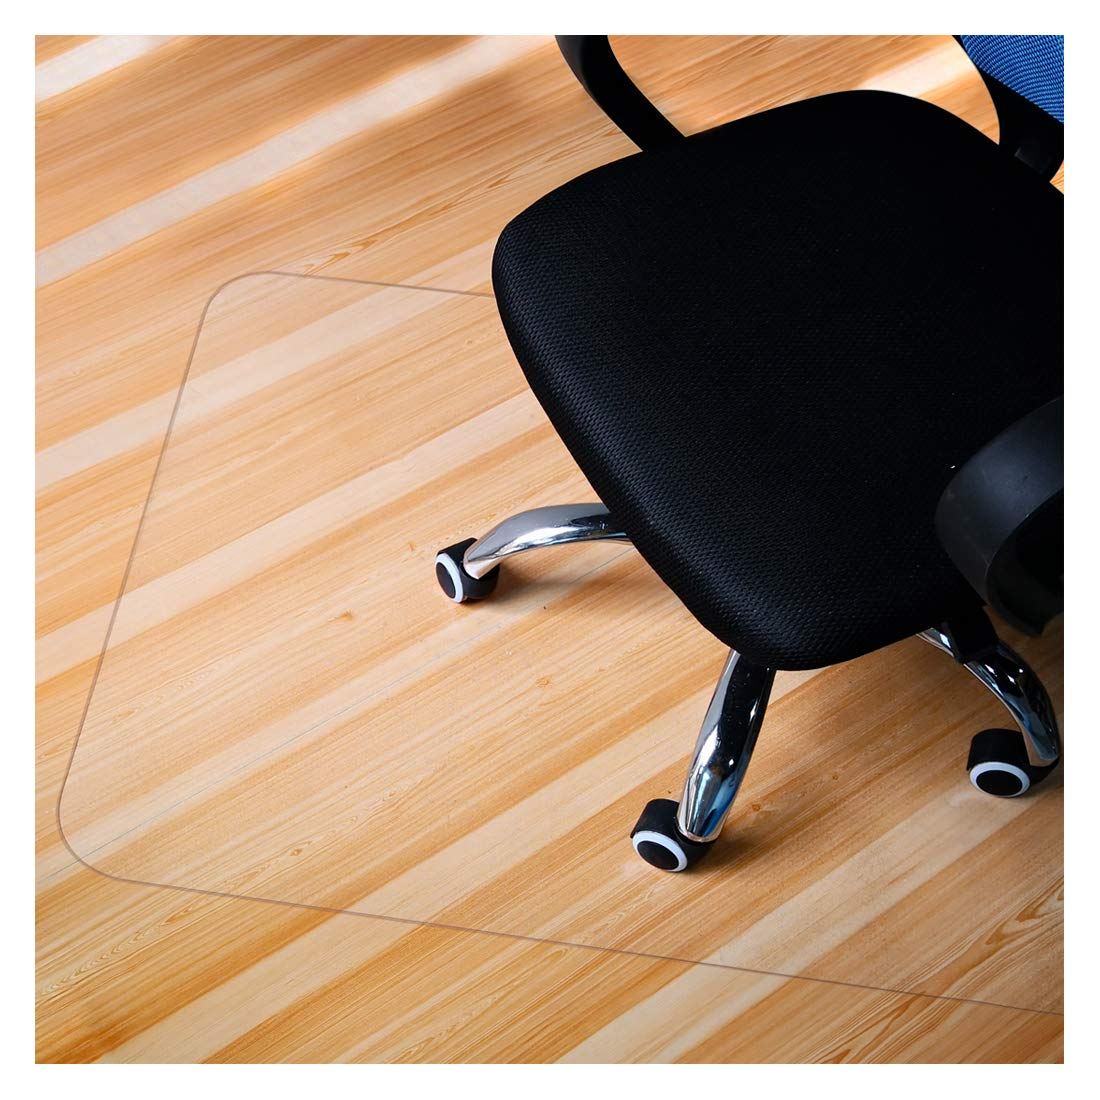 GIOVARA Clear Chair Mat for Hard Floors, 90x120cm (3'x4'), Rectangular, High Impact Strength, Non-Slip, Non-Recycling Material